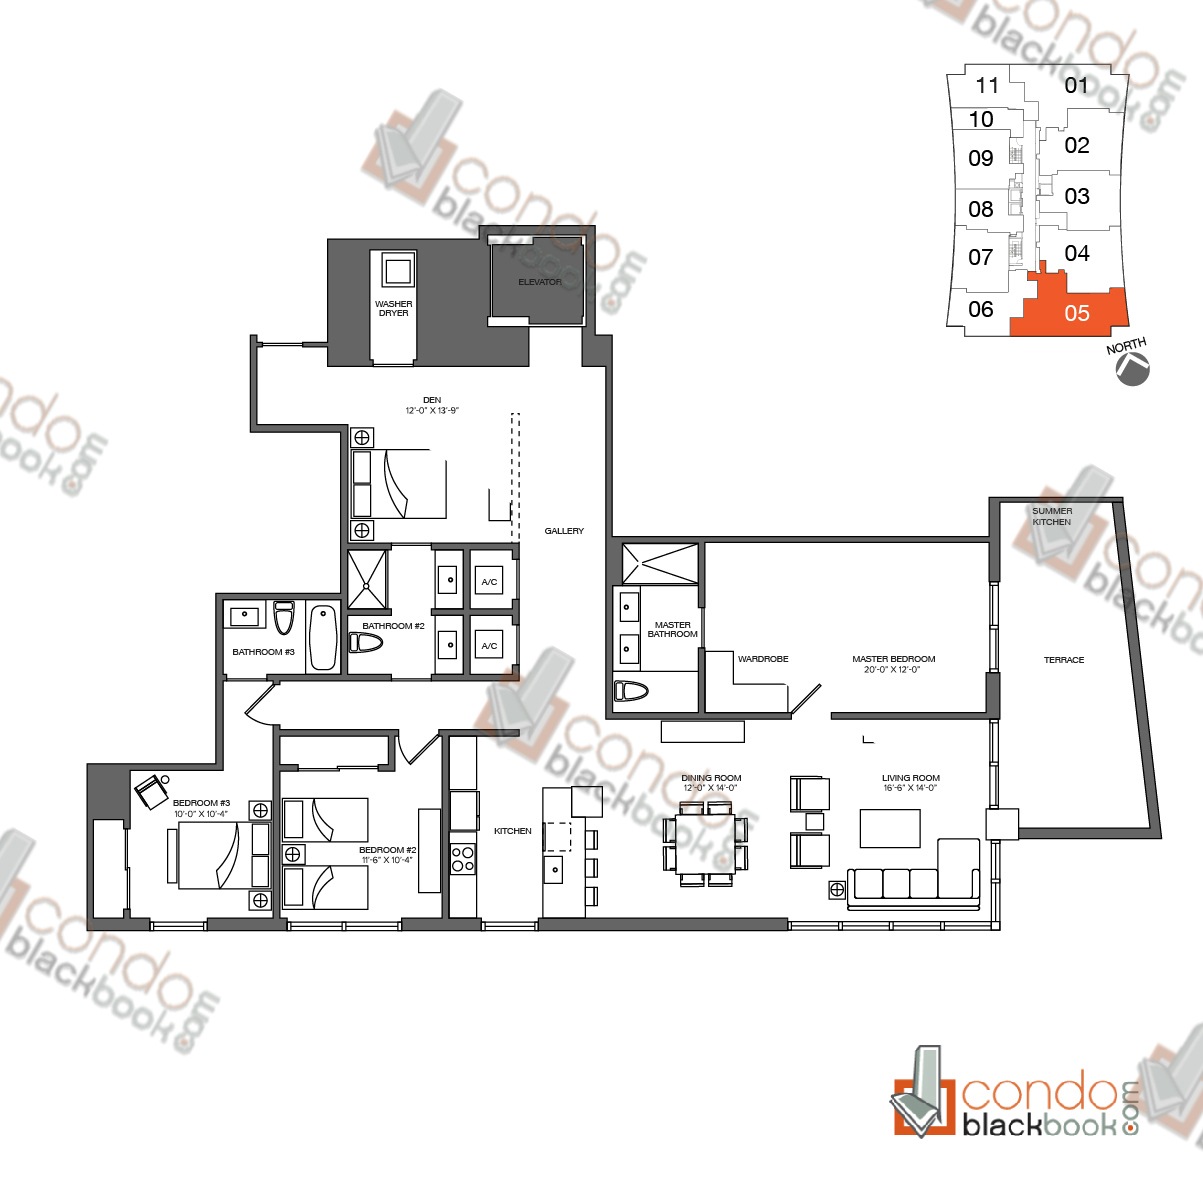 Floor plan for 1010 Brickell Brickell Miami, model C, line 05, 3/3 + Den bedrooms, 2,181 sq ft